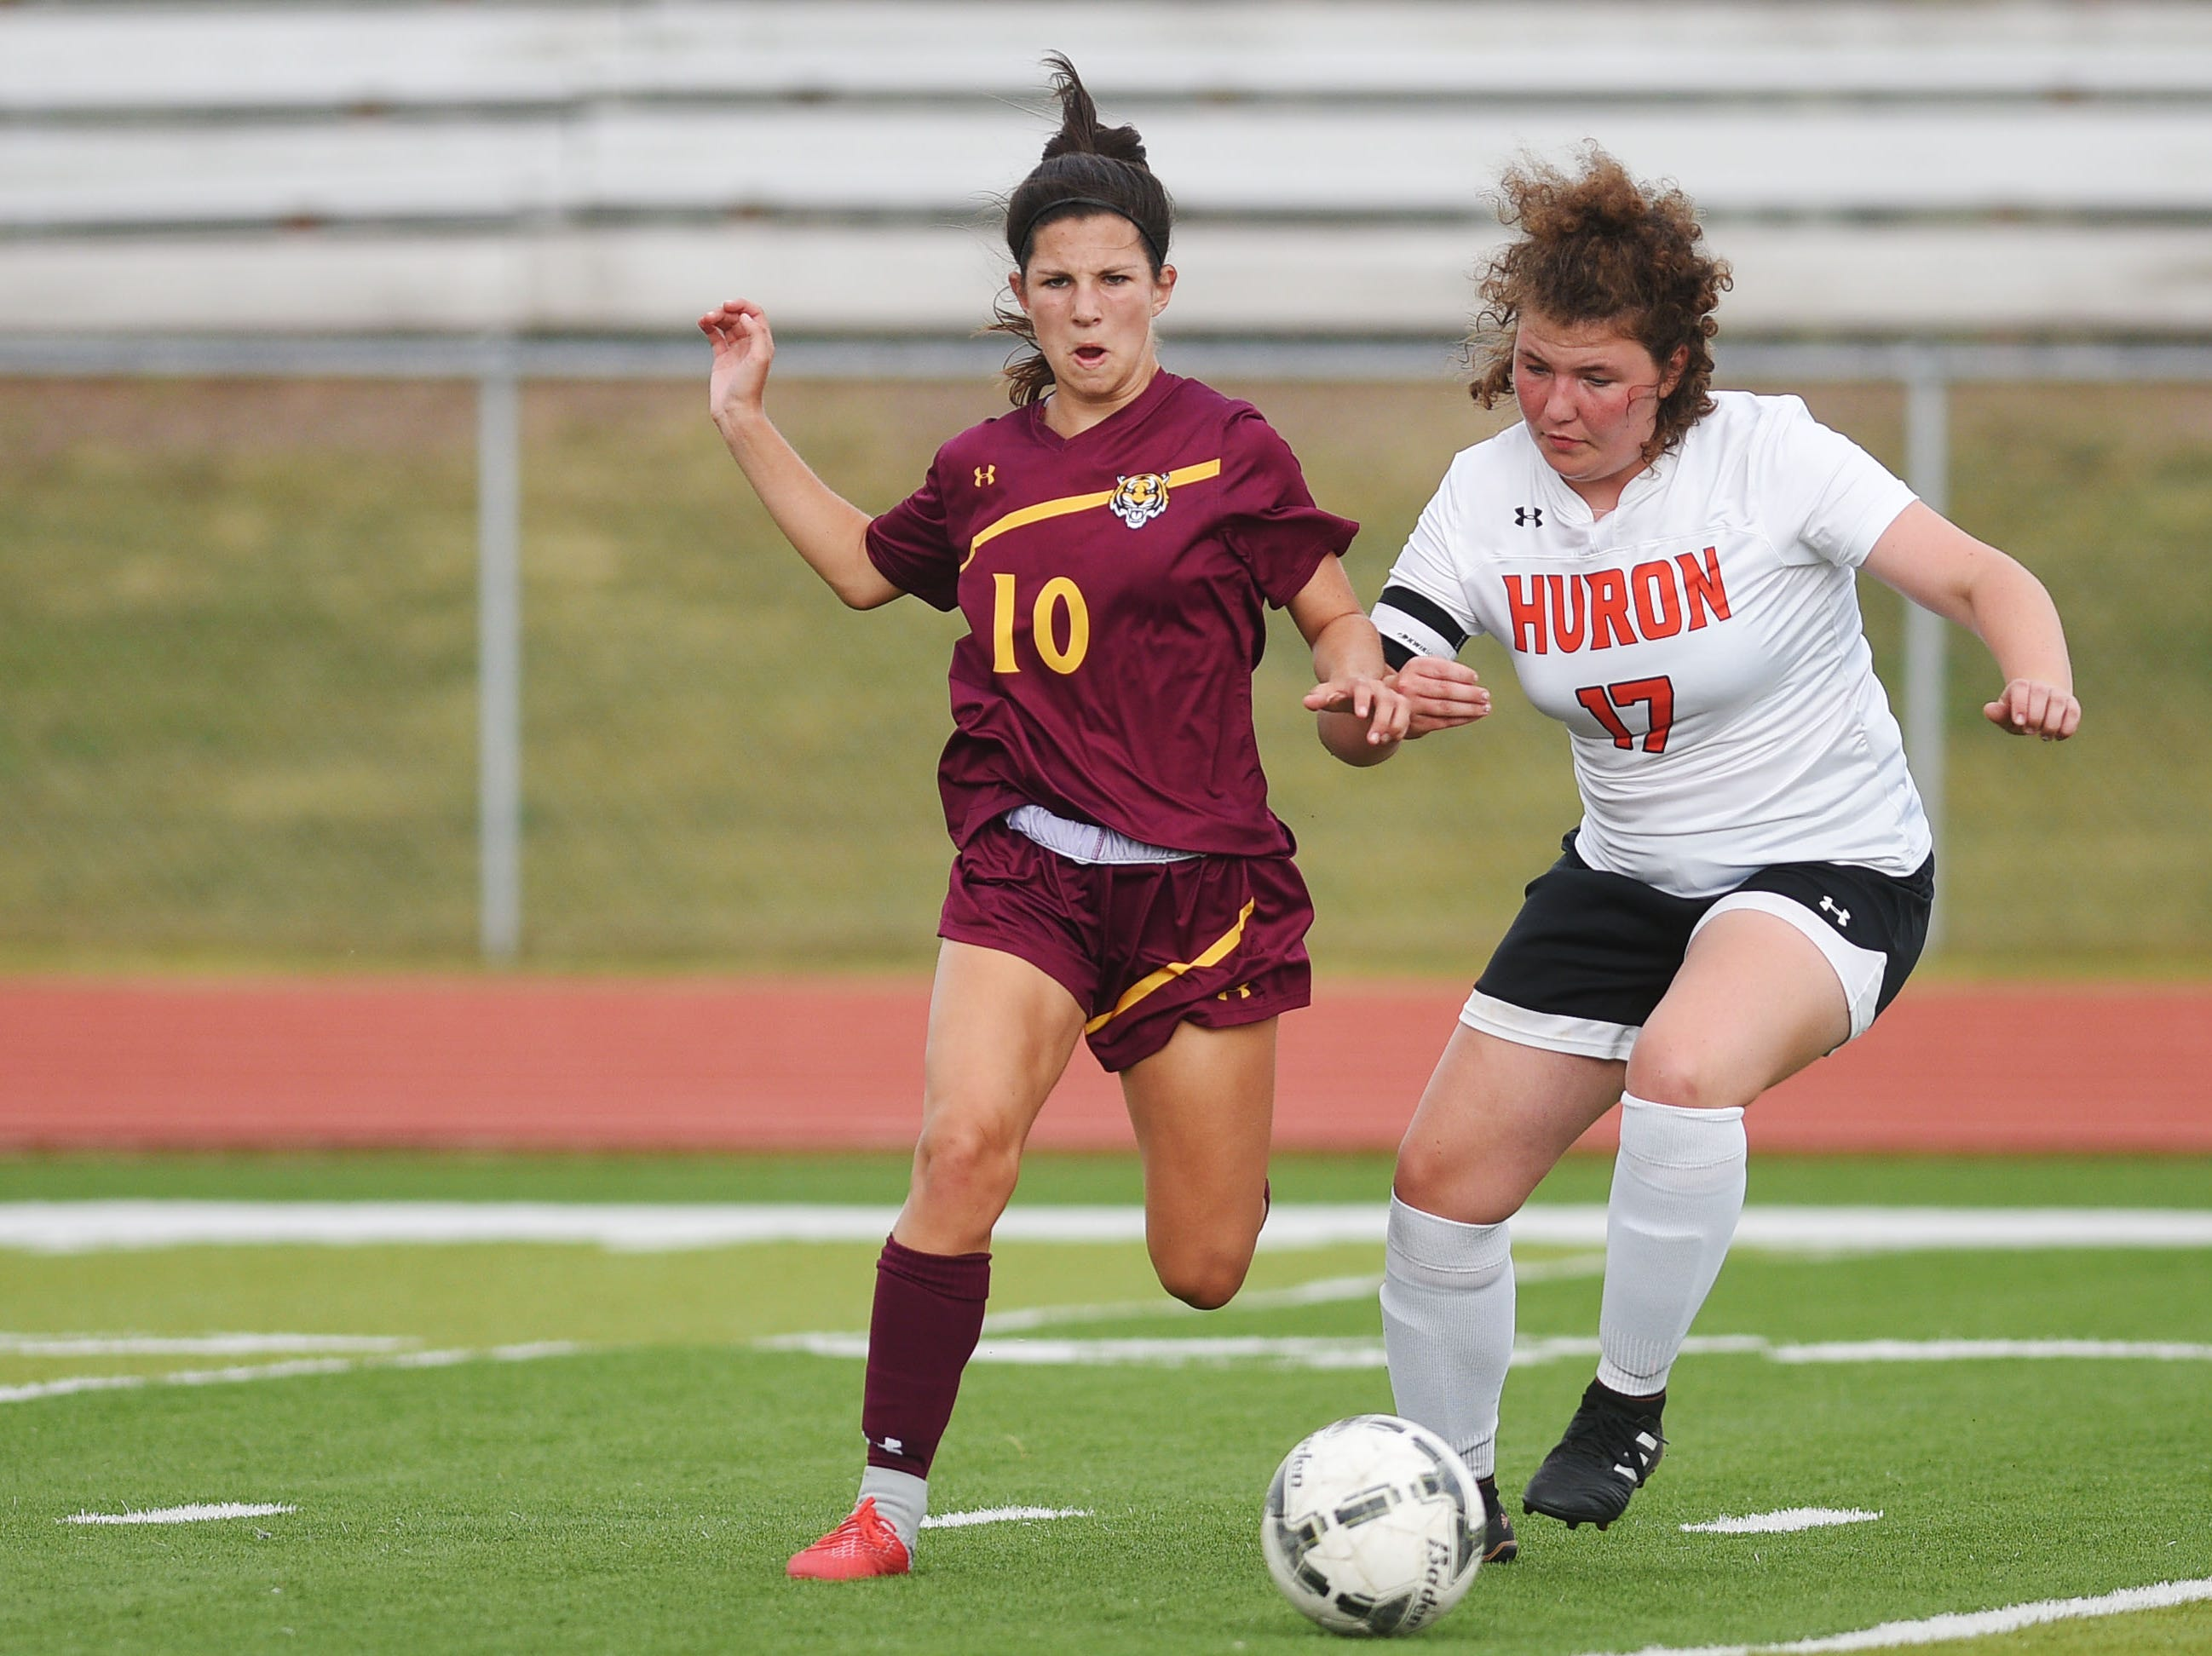 Harrisburg's Brooklyn Schimoeller goes against Huron's  Shelbey Hershman during the game Thursday, Sept. 13, at Harrisburg.